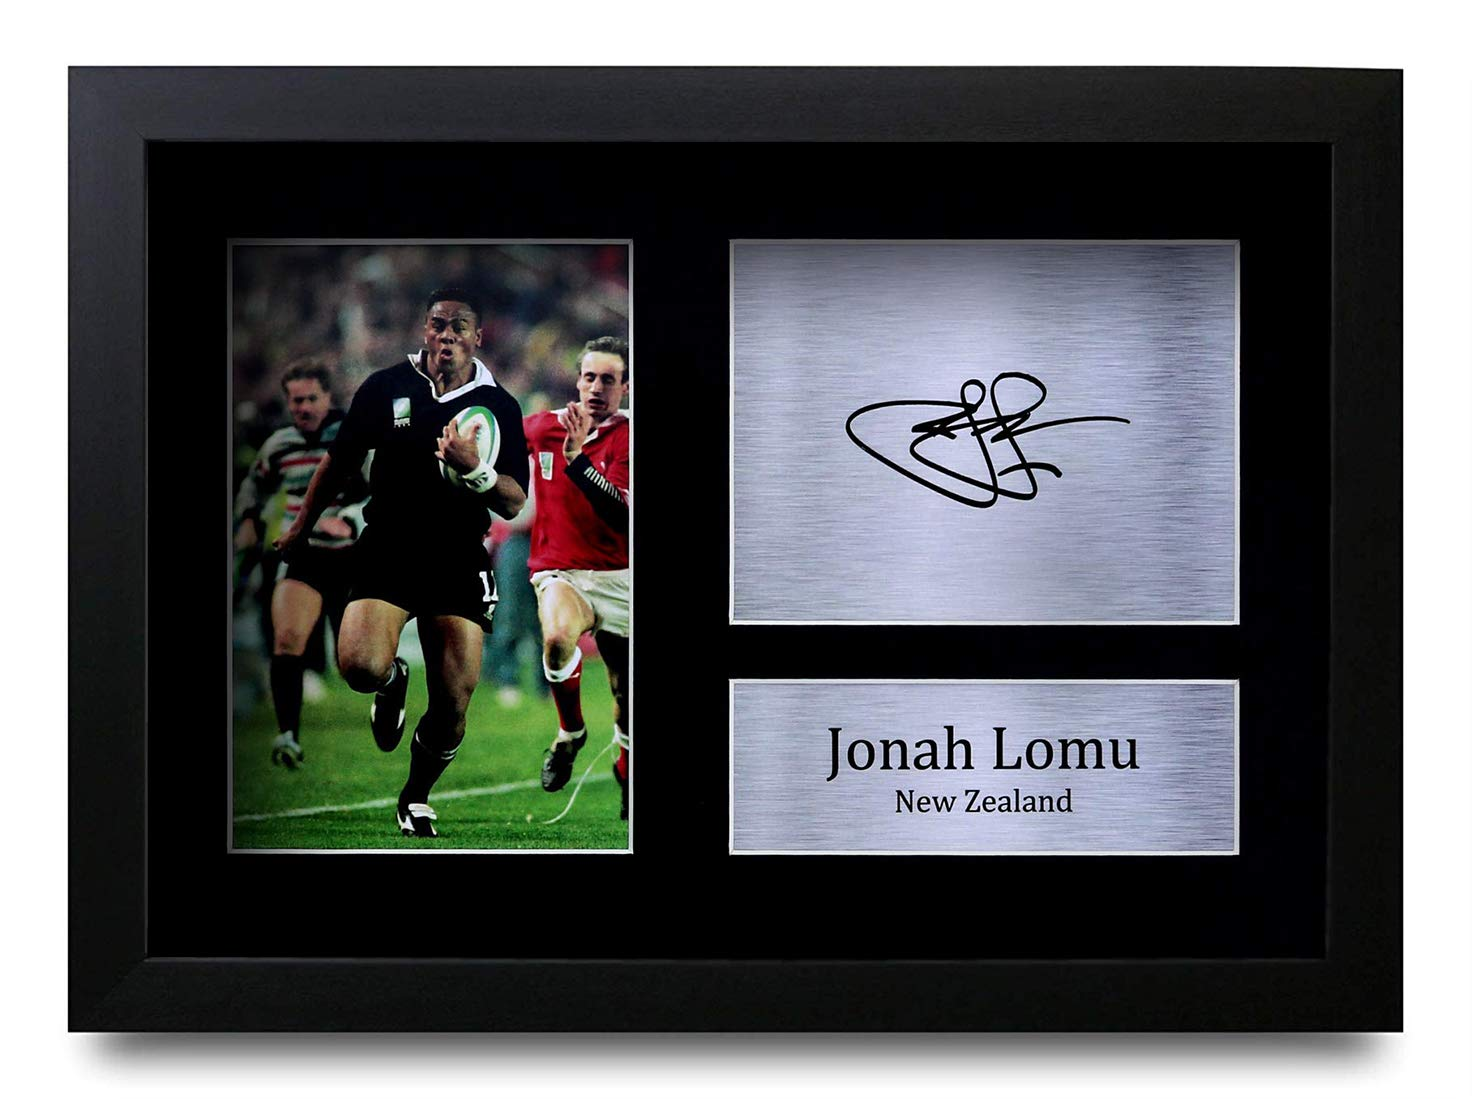 A4 Framed HWC Trading FR Jonah Lomu New Zealand Gifts Printed Signed Autograph Picture for Rugby Union Fans